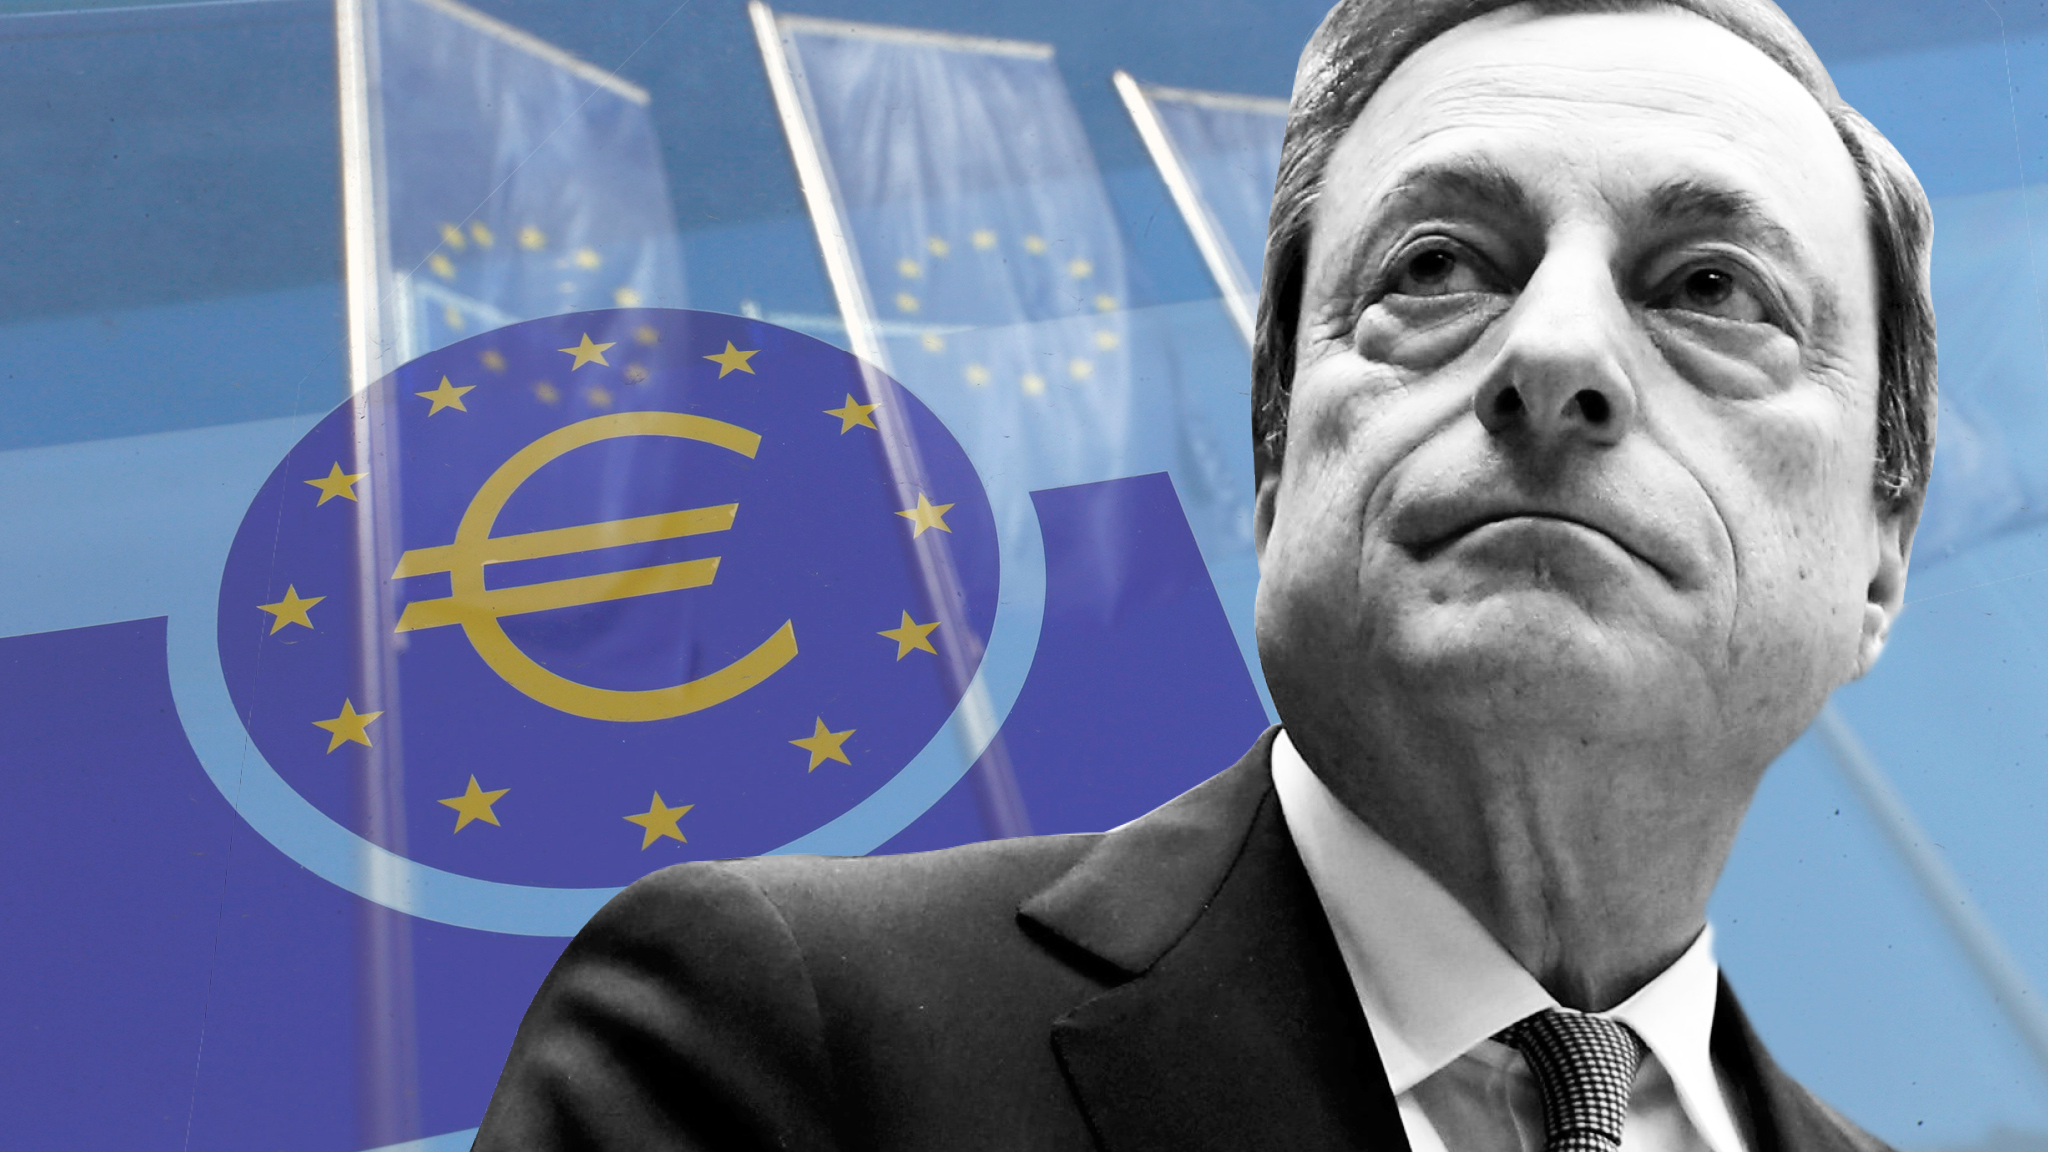 Image score for Trump Tariff - Euro Suffers Further Losses After ECB, Focus On Trump Tariff Decision